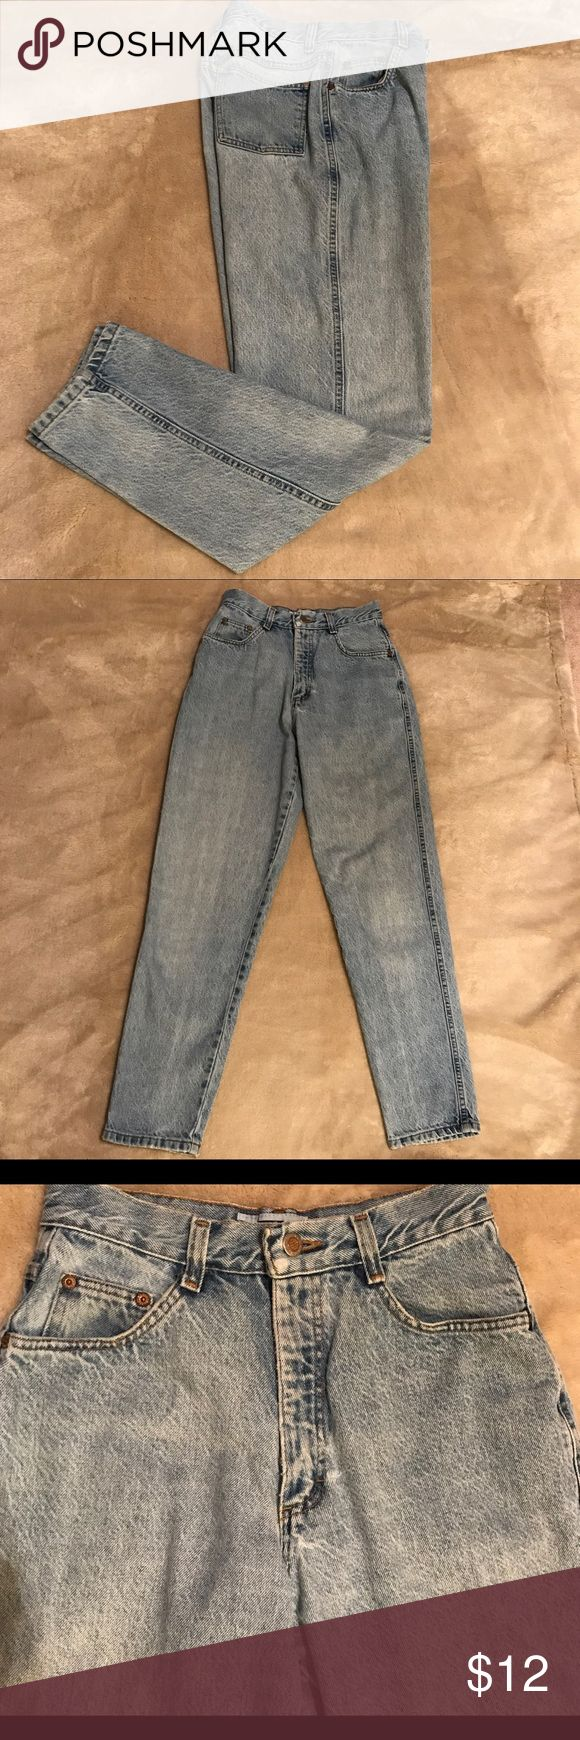 """Faded jeans 🇺🇸 Nicely faded,  distressed, broken-in classic cotton jeans with 2 pockets in front, two in back, front zip with metal button. High-waisted. Preowned with love and in good condition! Made in USA! 🇺🇸 Waist 12.5"""" Rise 12"""" Inseam 30"""" Nuovo County Seat Jeans Straight Leg"""